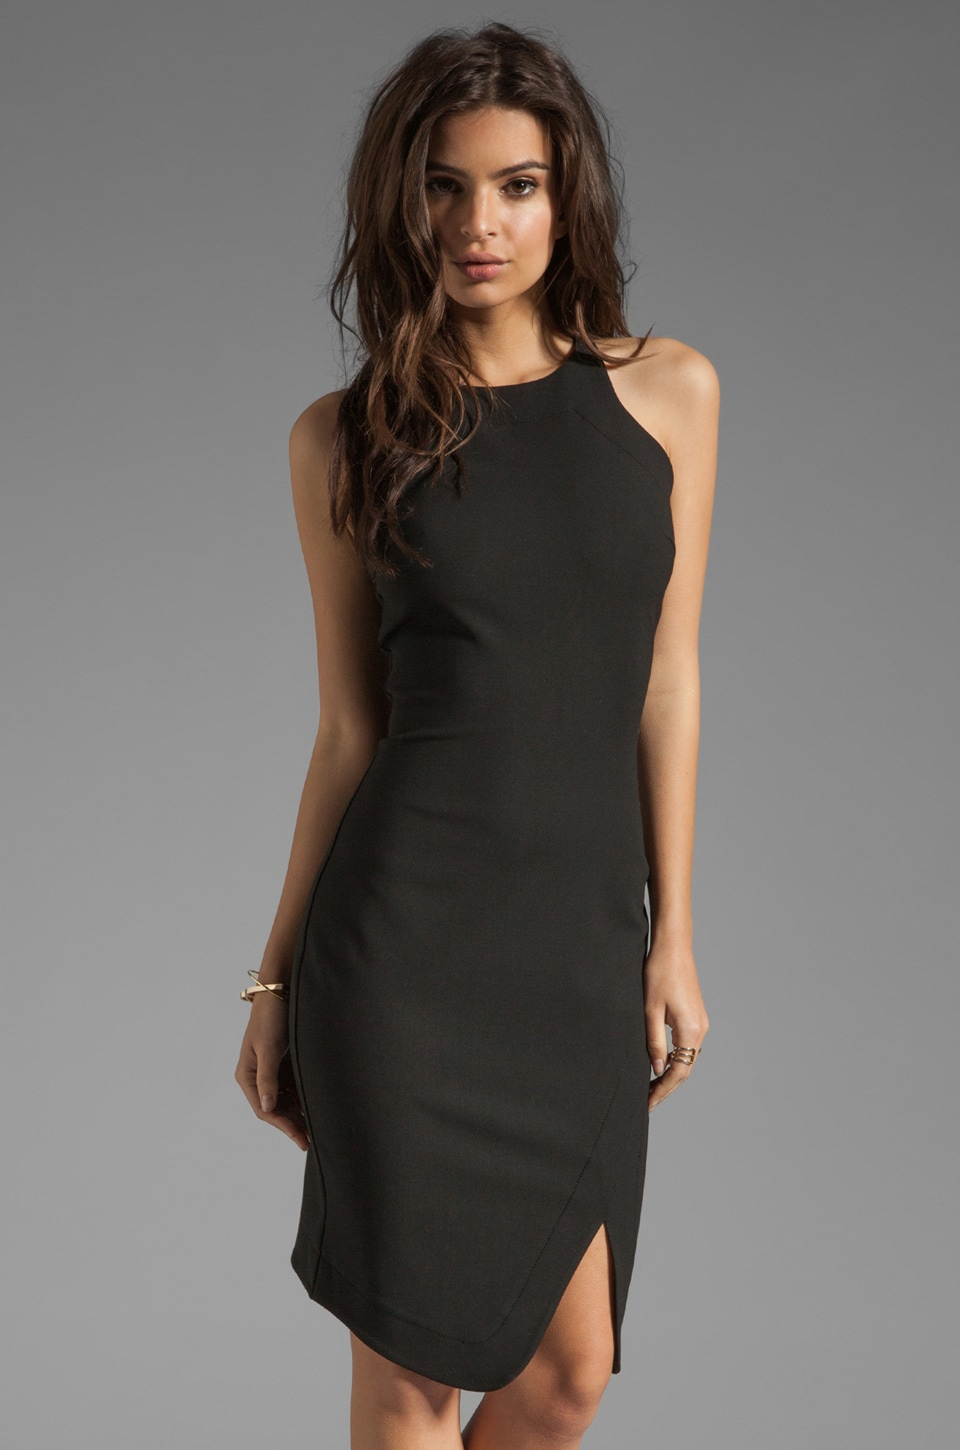 Elizabeth and James Bardot Dress in Black